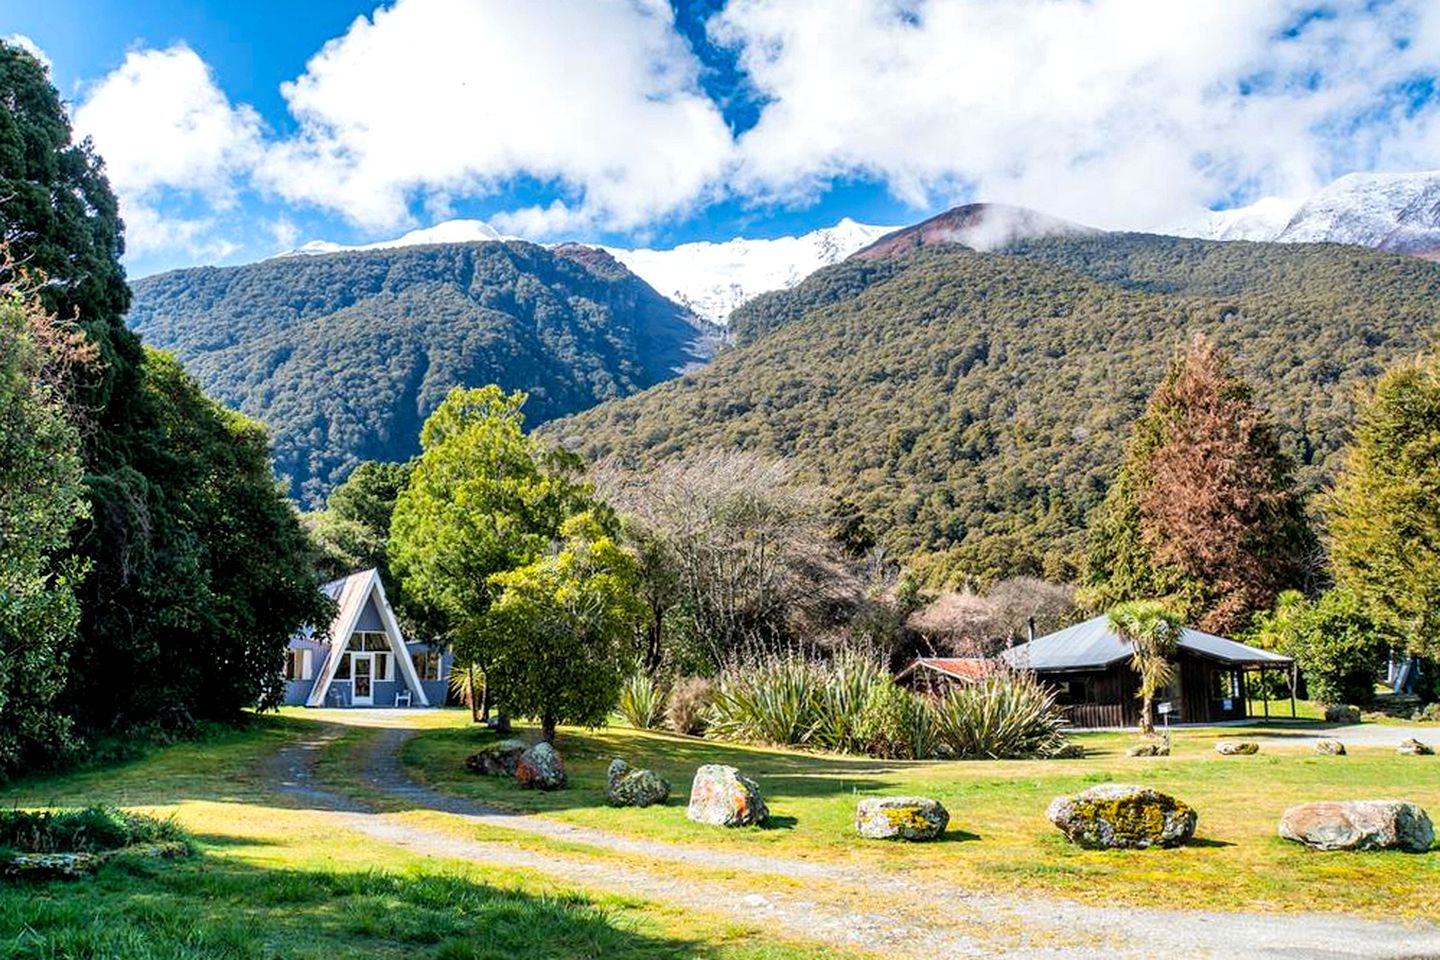 This Makarora accommodation is great for South Island holidays